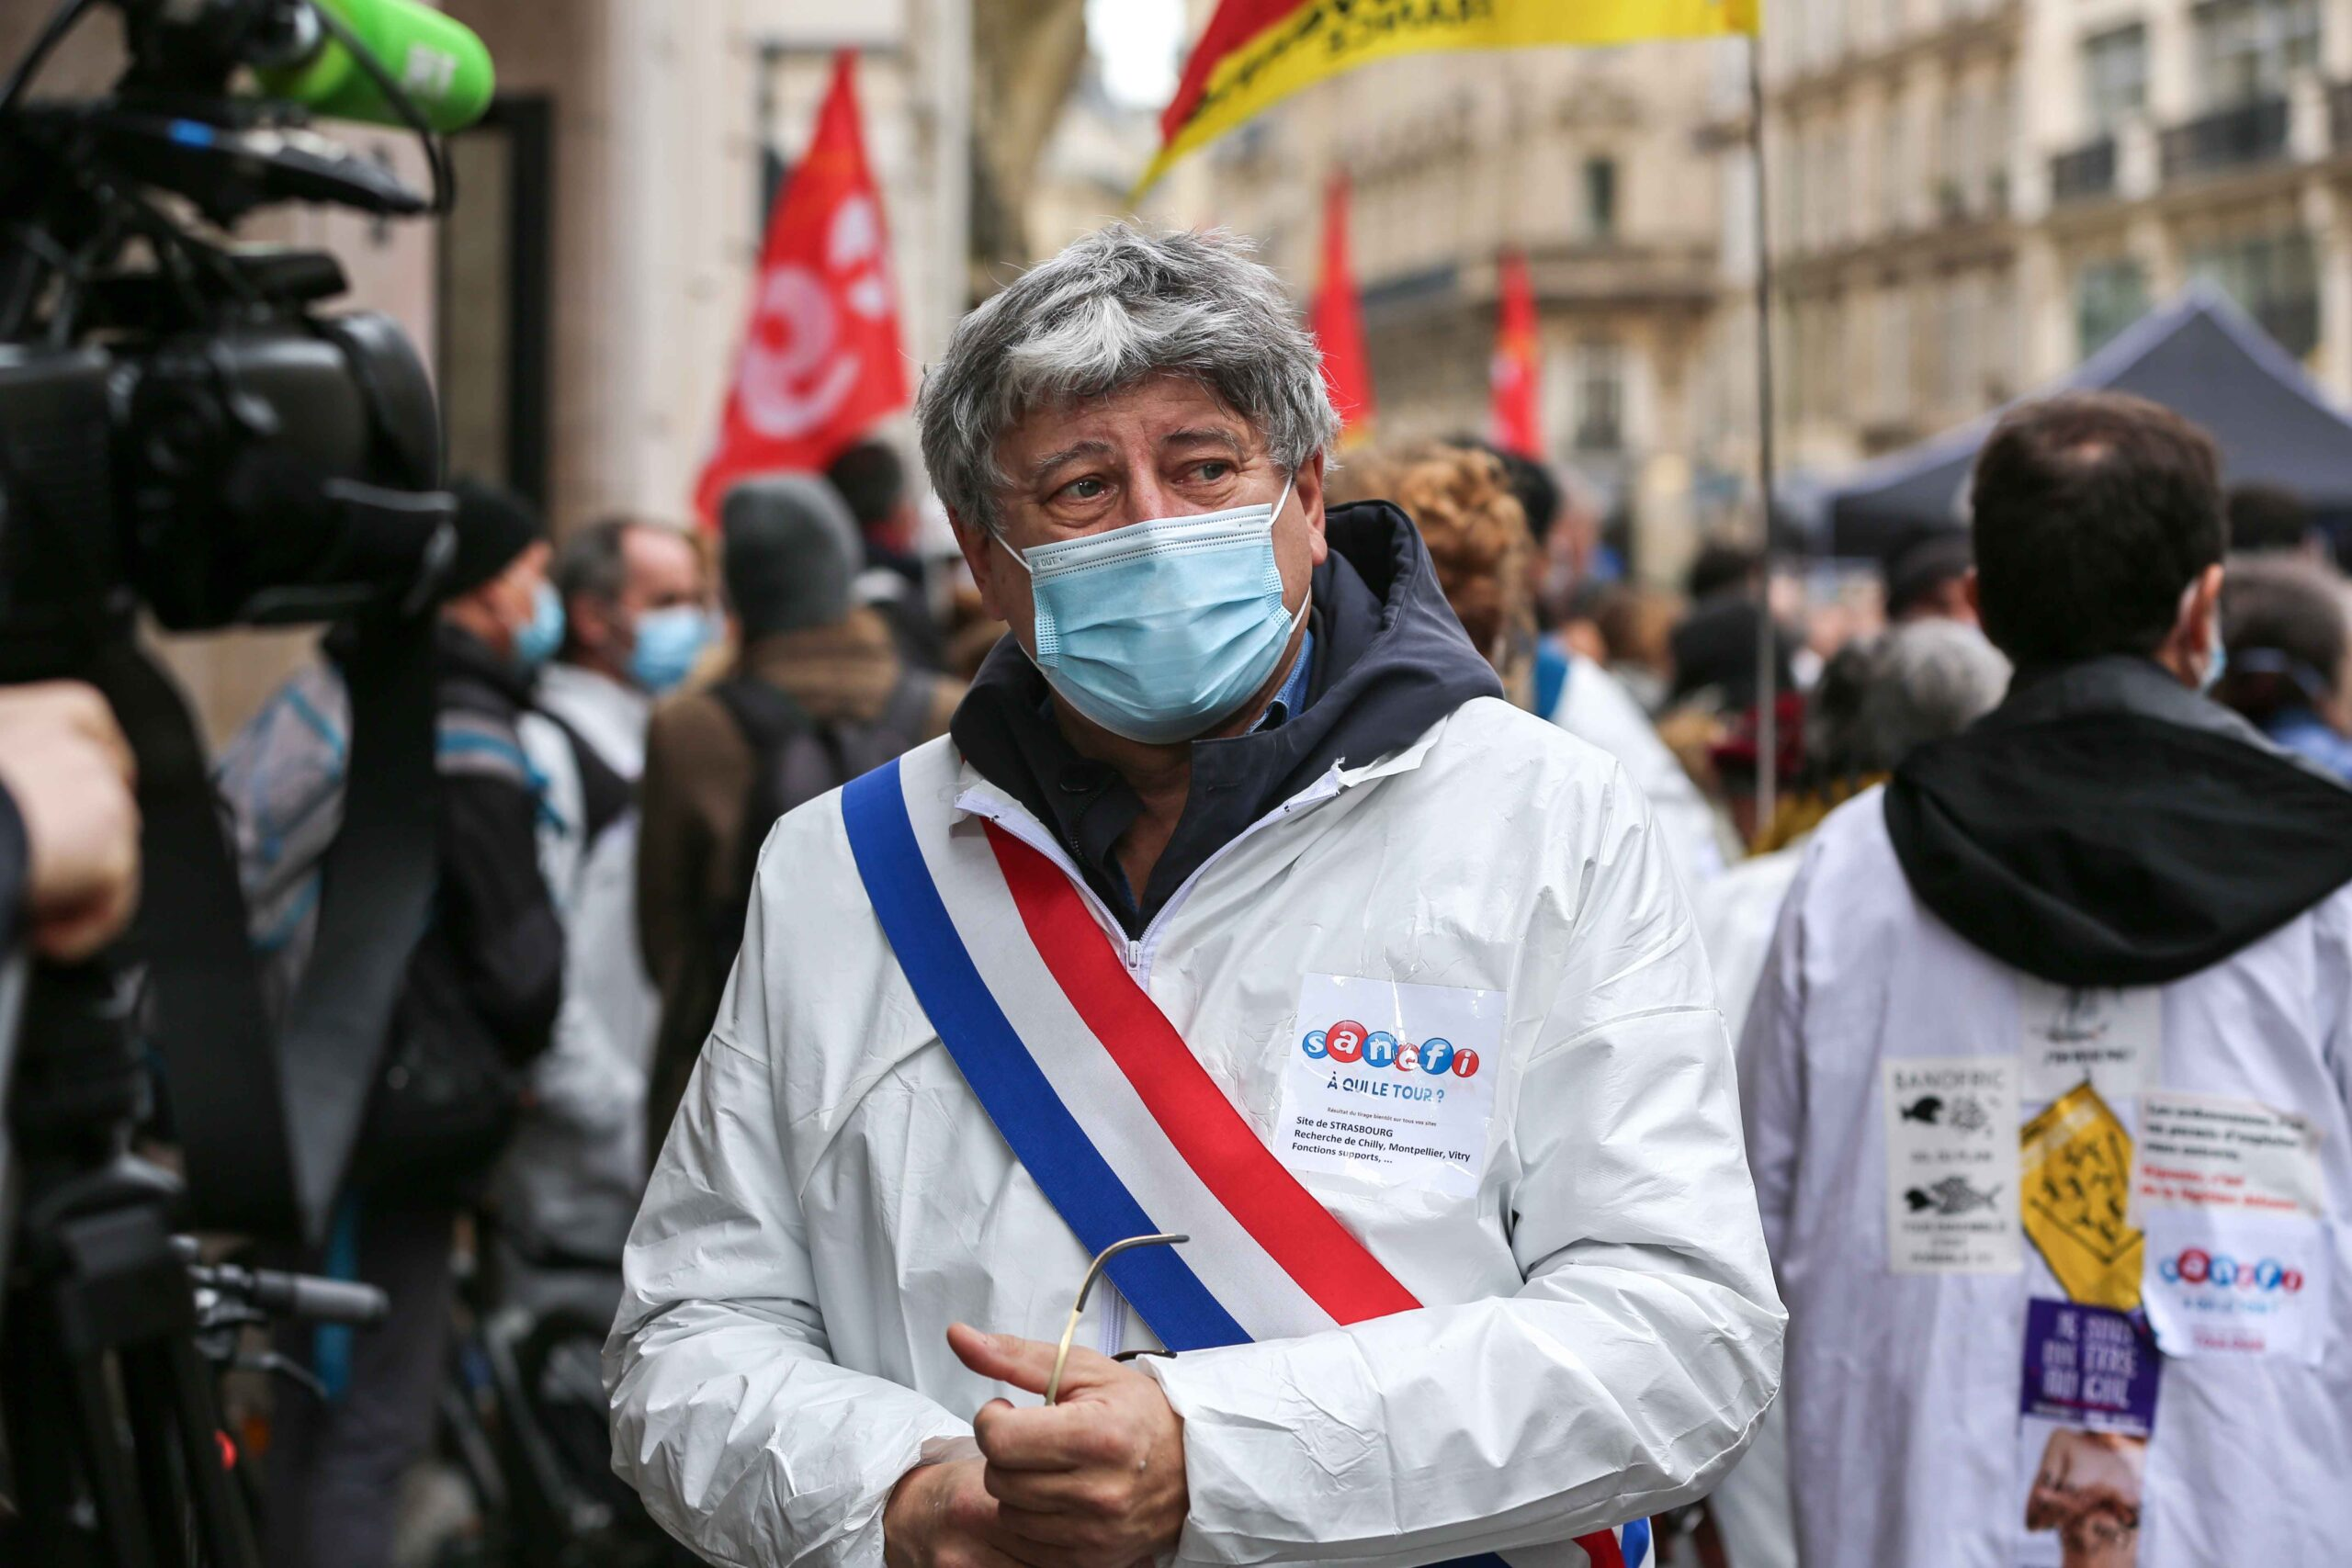 Member of parliament of French leftist La France Insoumise (LFI) party Eric Coquerel (C), wearing a lab coat, talks to the press during a gathering in front of the French pharma giant Sanofi group headquarters in Paris, on February 4, 202, during a day of